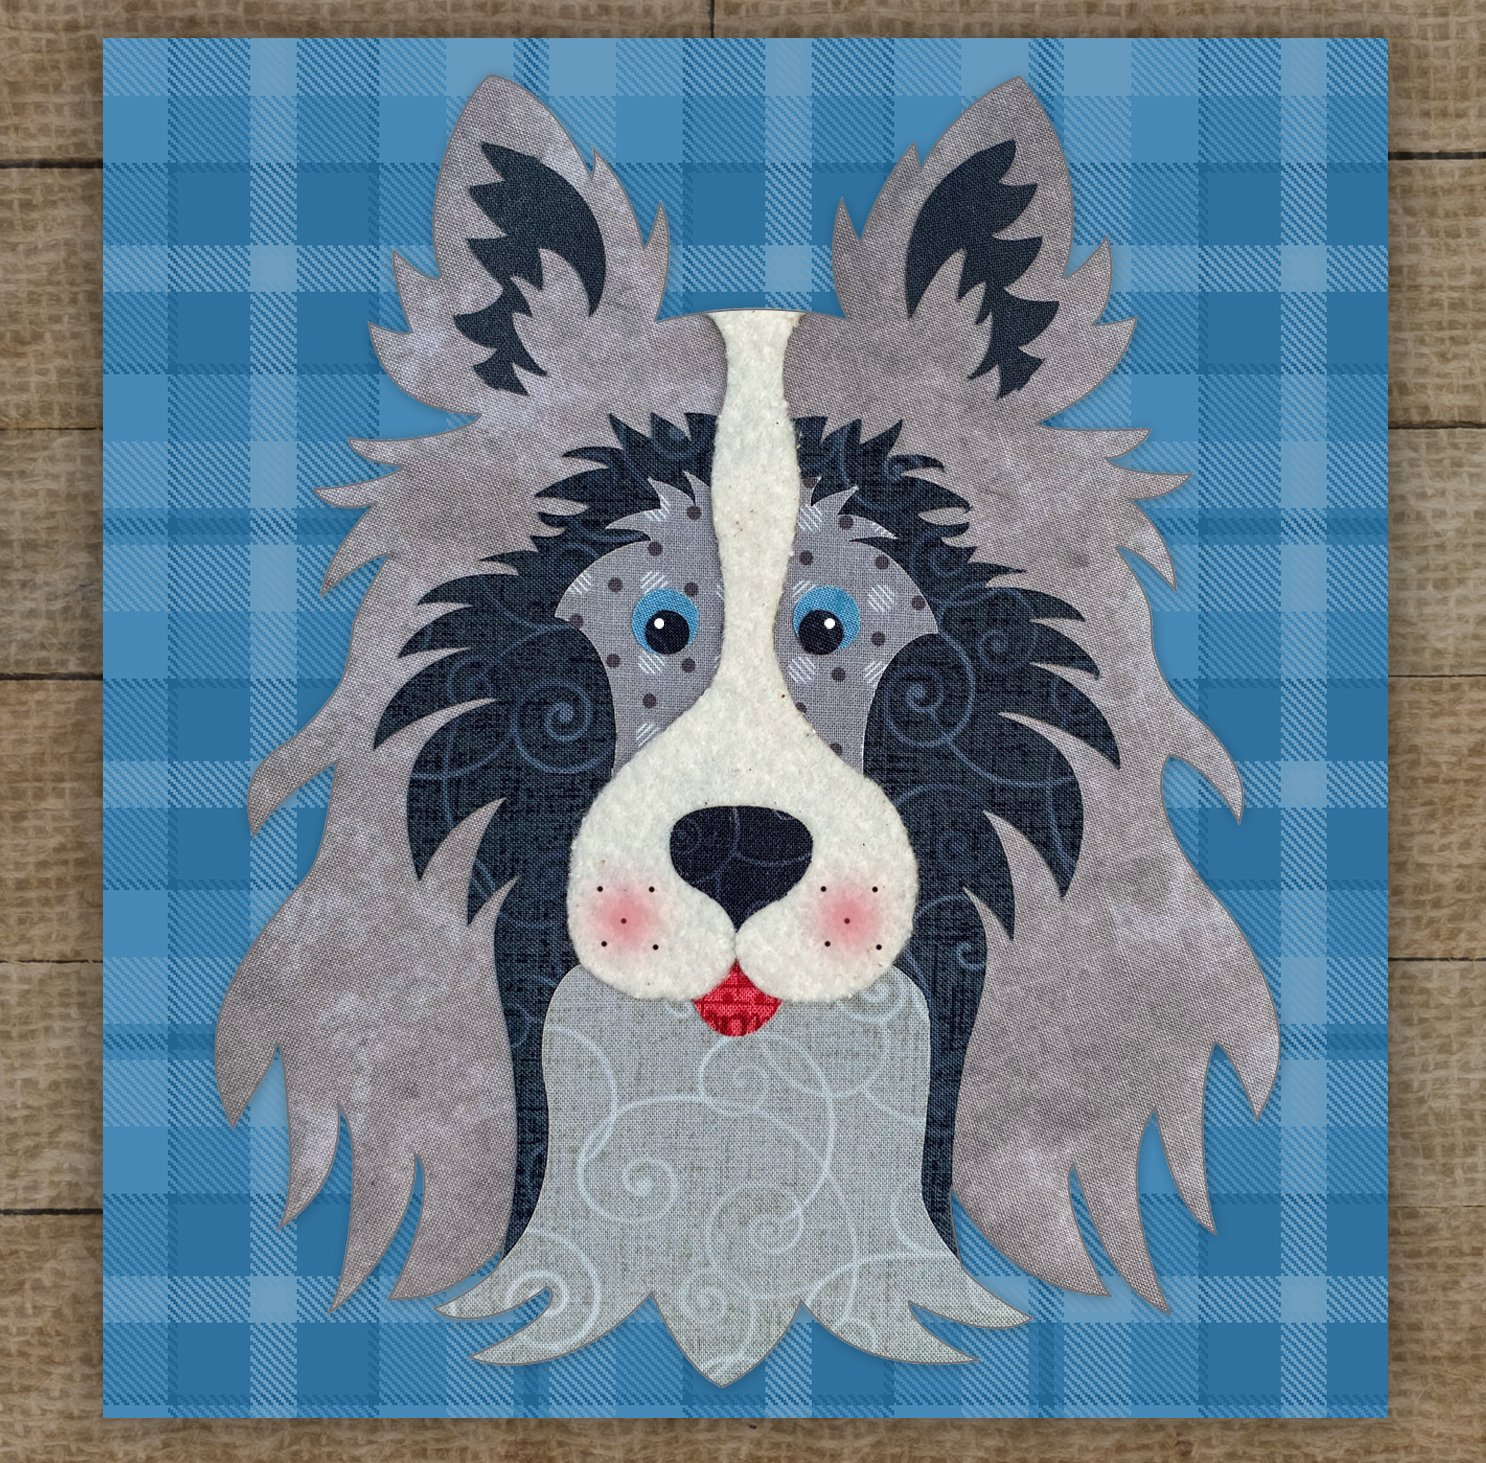 Collie / Sheltie Blue Merle Precut Fused Applique Kit